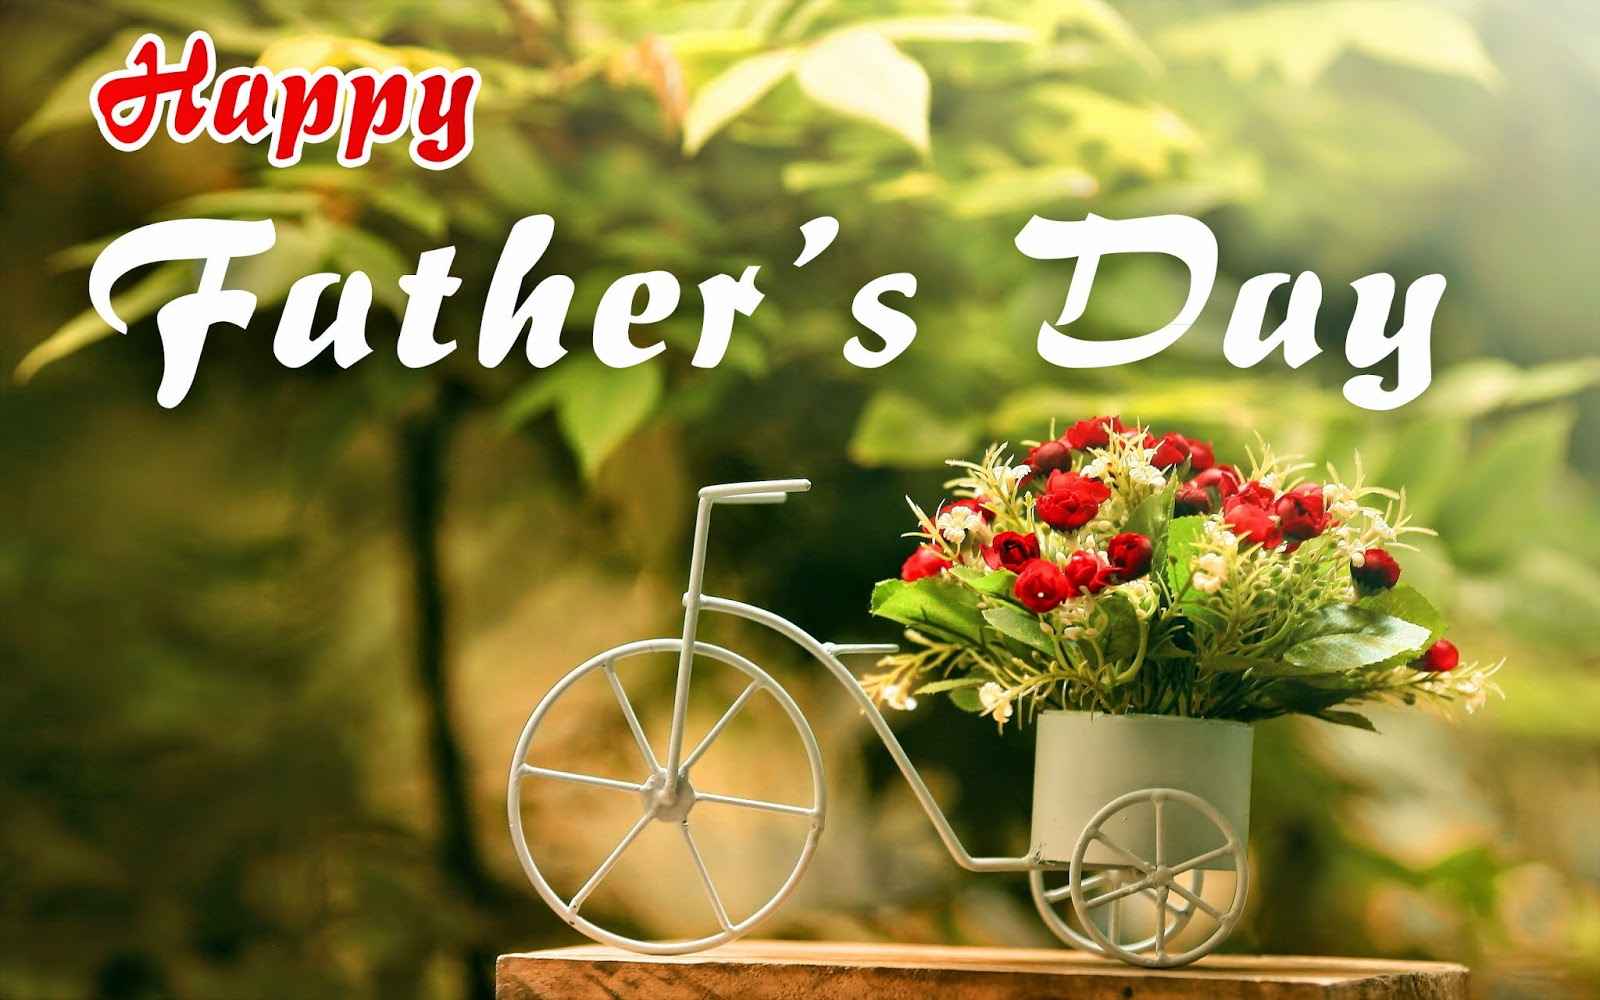 Happy Fathers Day Images Photos Whatsapp Status FB DP Pics Wallpapers 2015